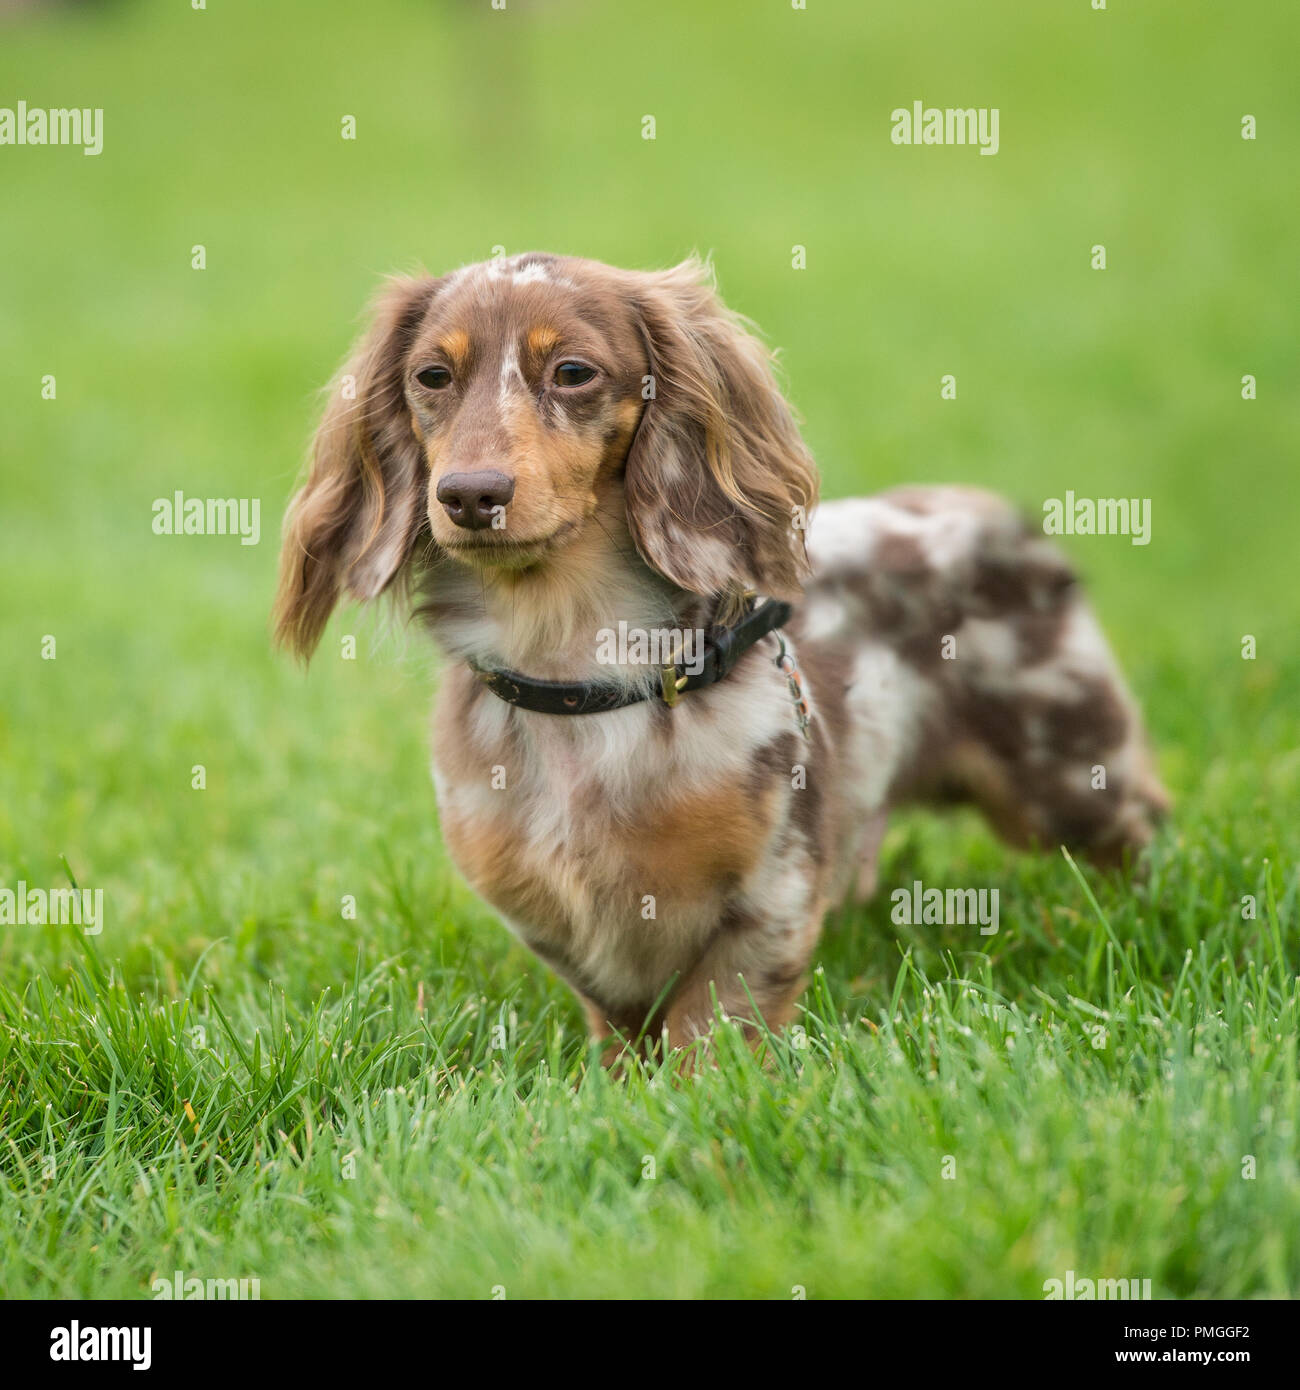 Longhaired Dachshund High Resolution Stock Photography And Images Alamy